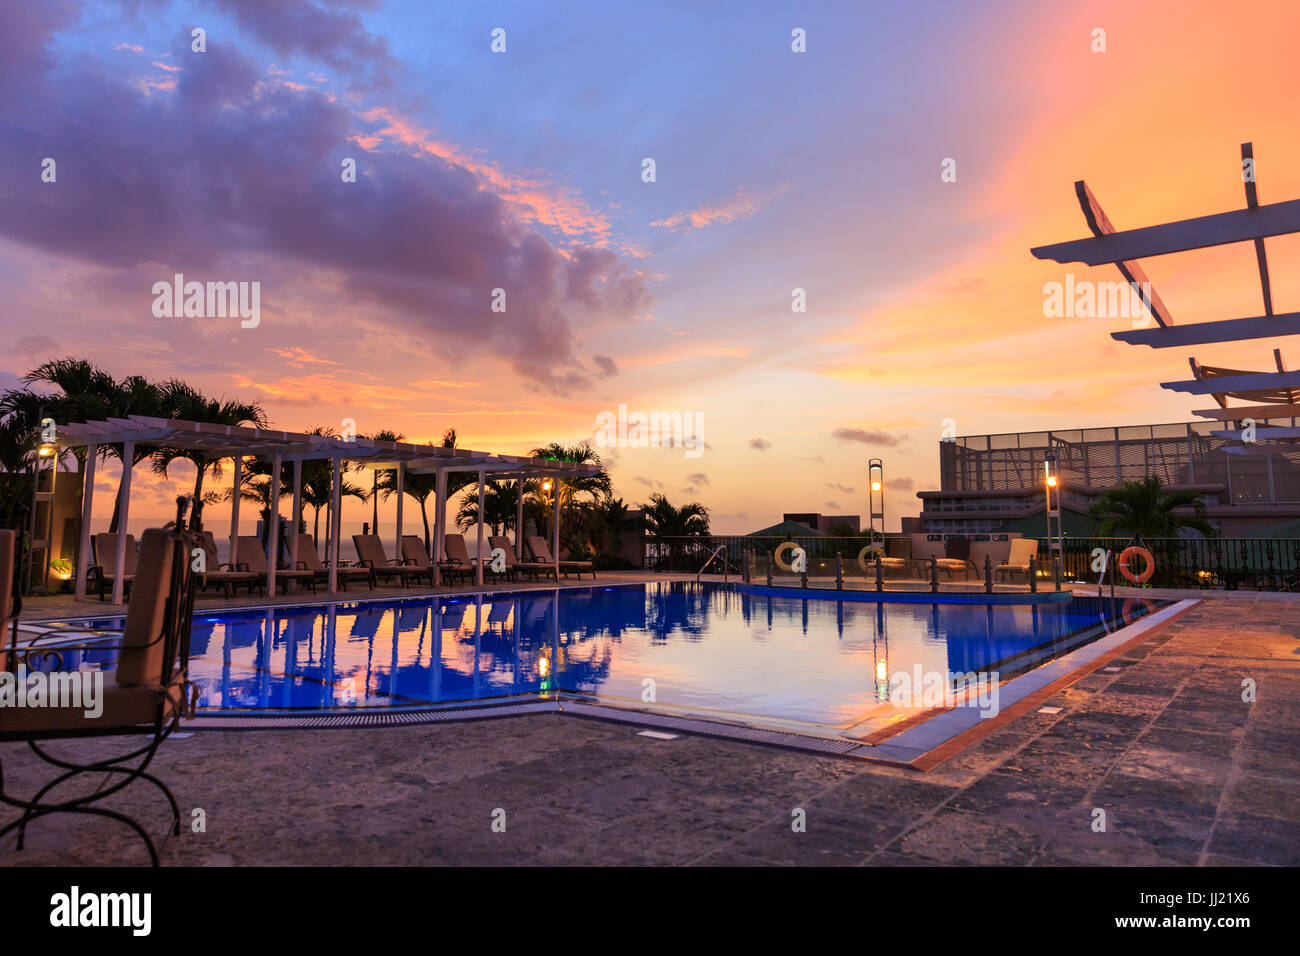 Sunset by the rooftop pool of the Hotel Parque Central in Havana, Cuba - Stock Image